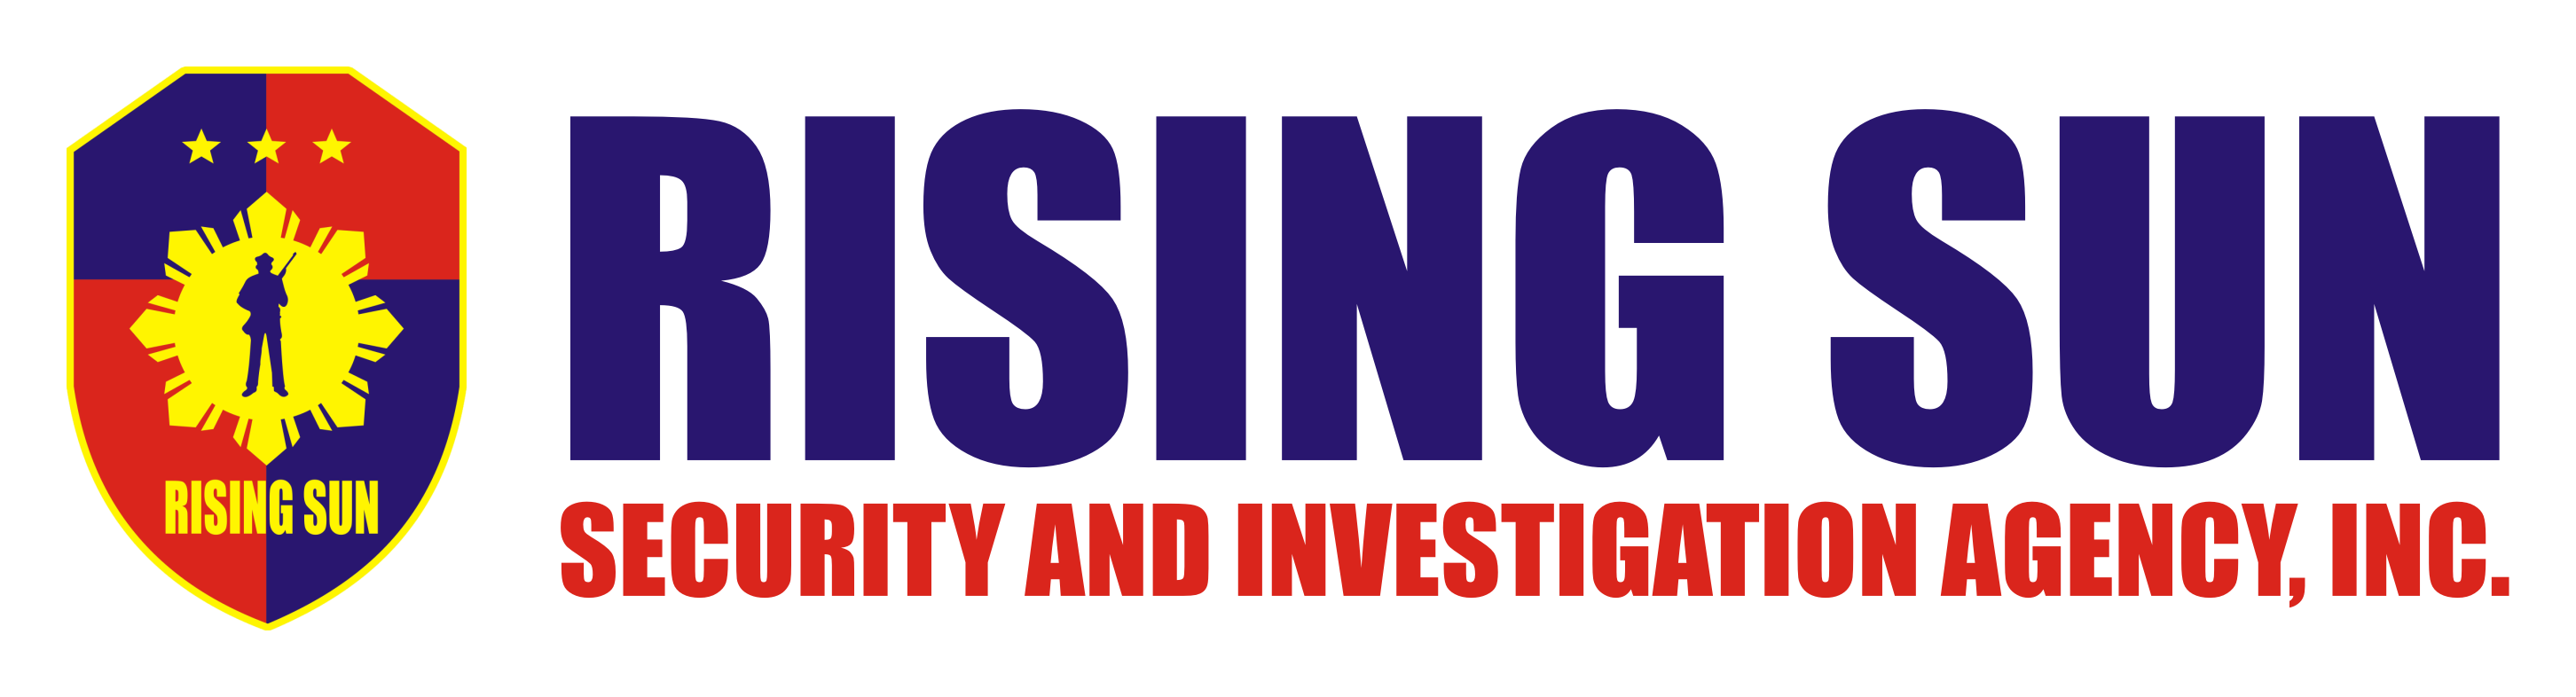 Rising Sun Security Agency | The Official Website of Rising Sun Security Agency